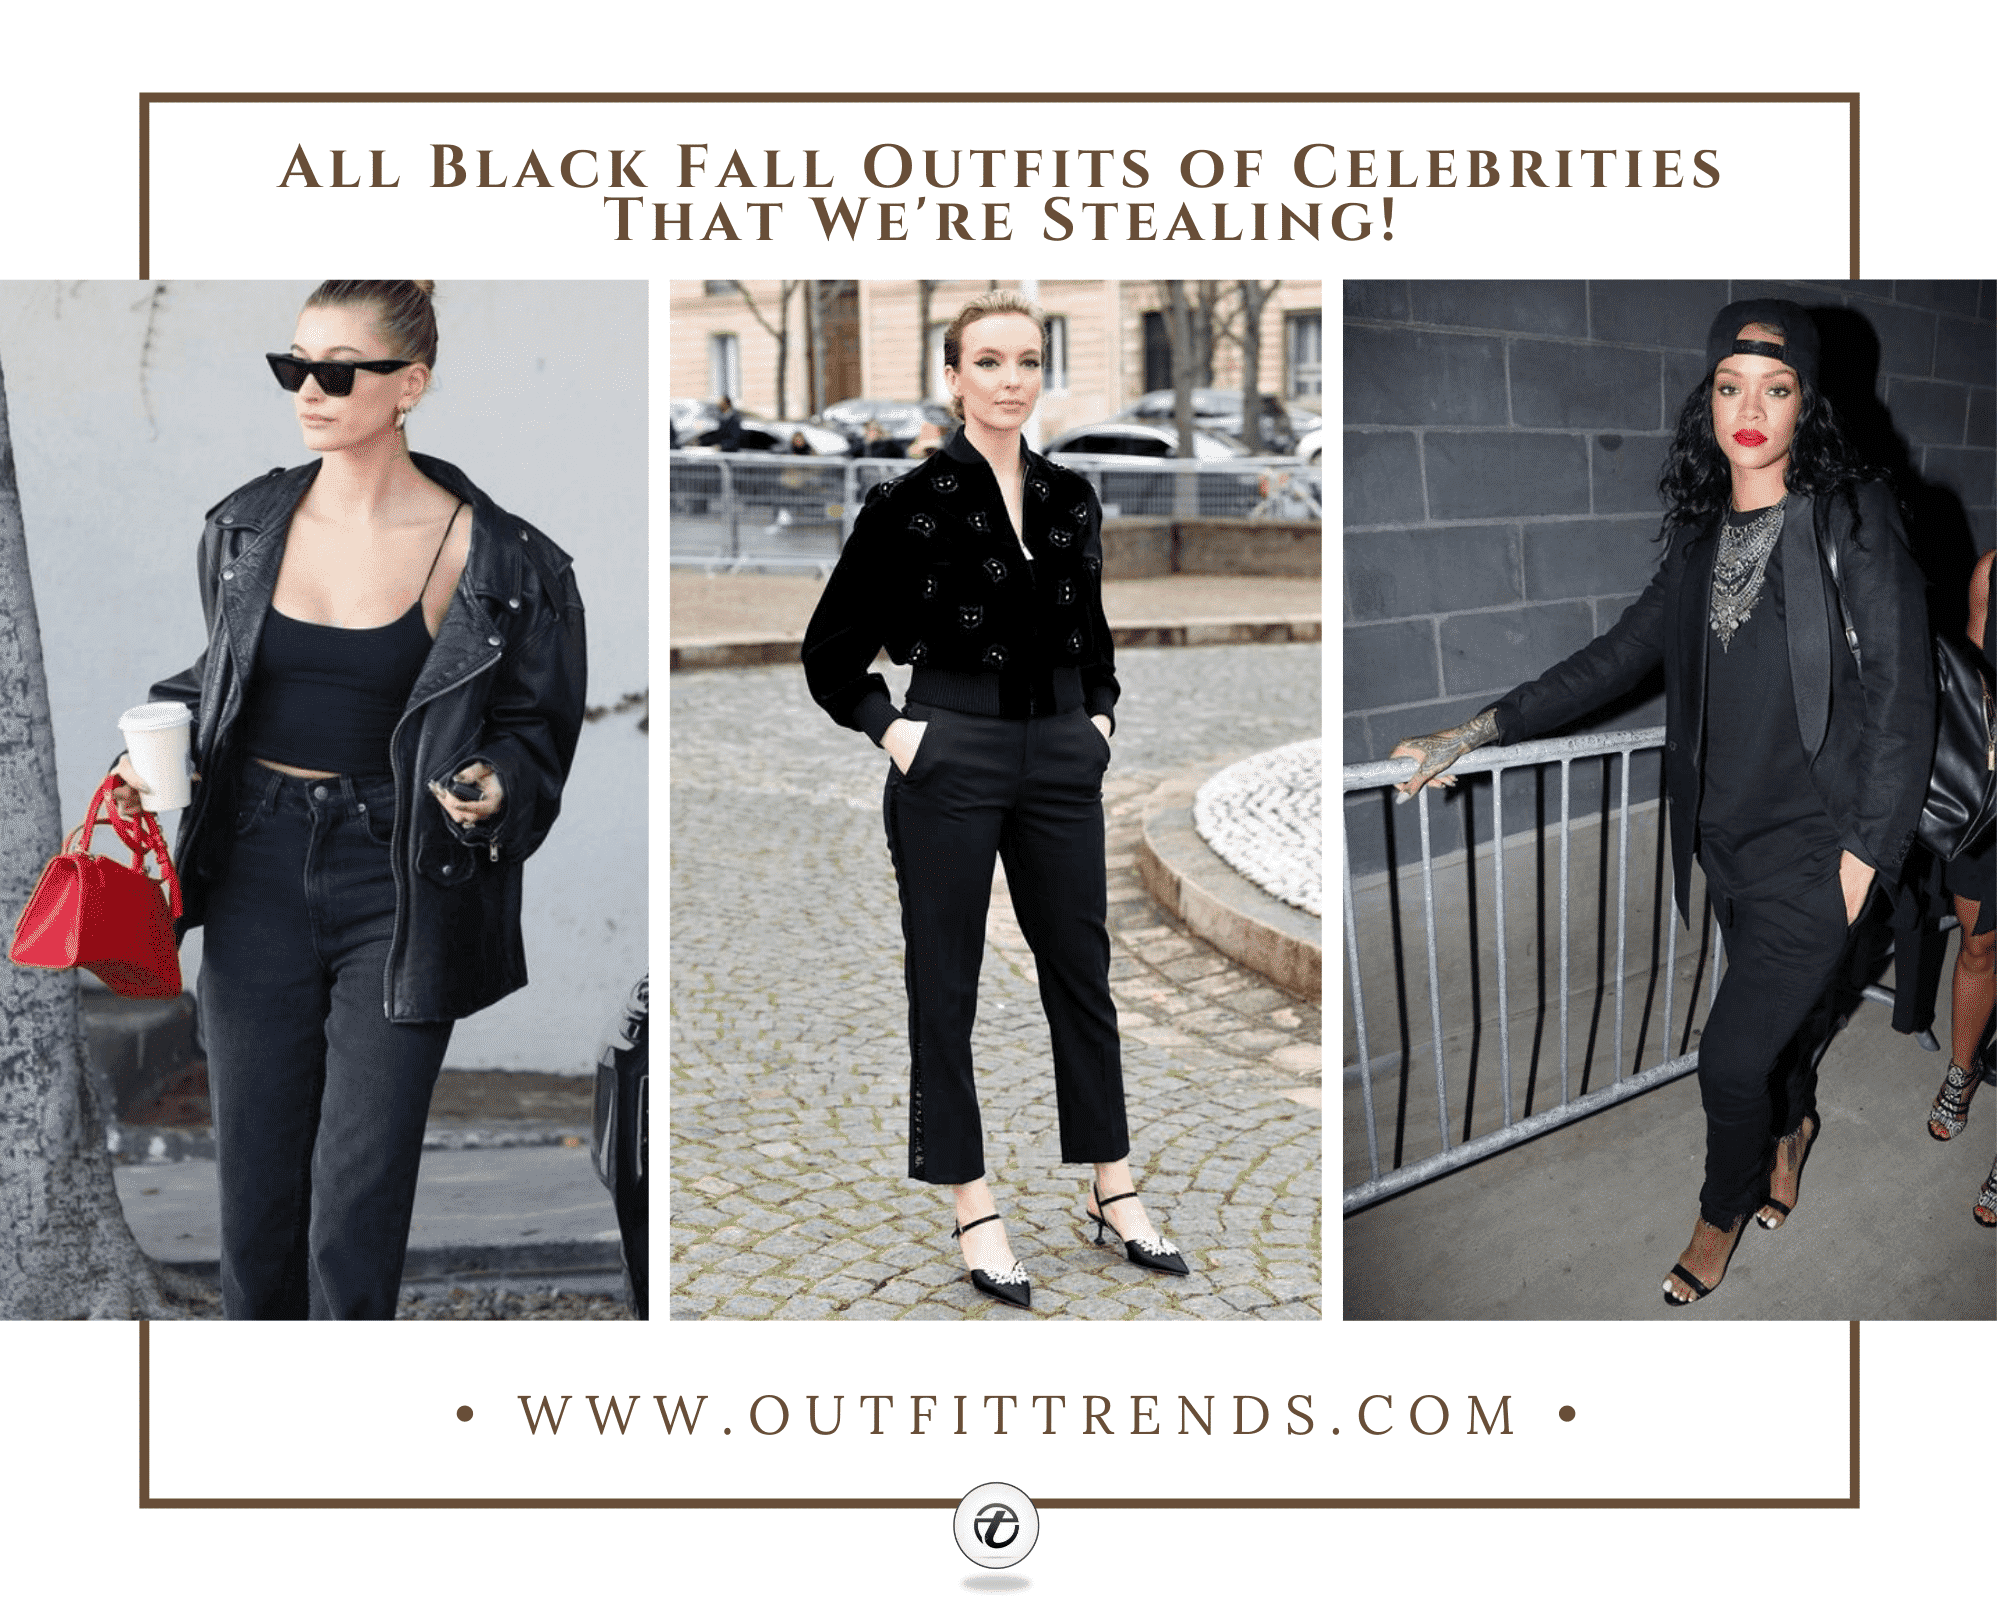 30 Celebrities All-Black Outfit Styles for Fall to Copy